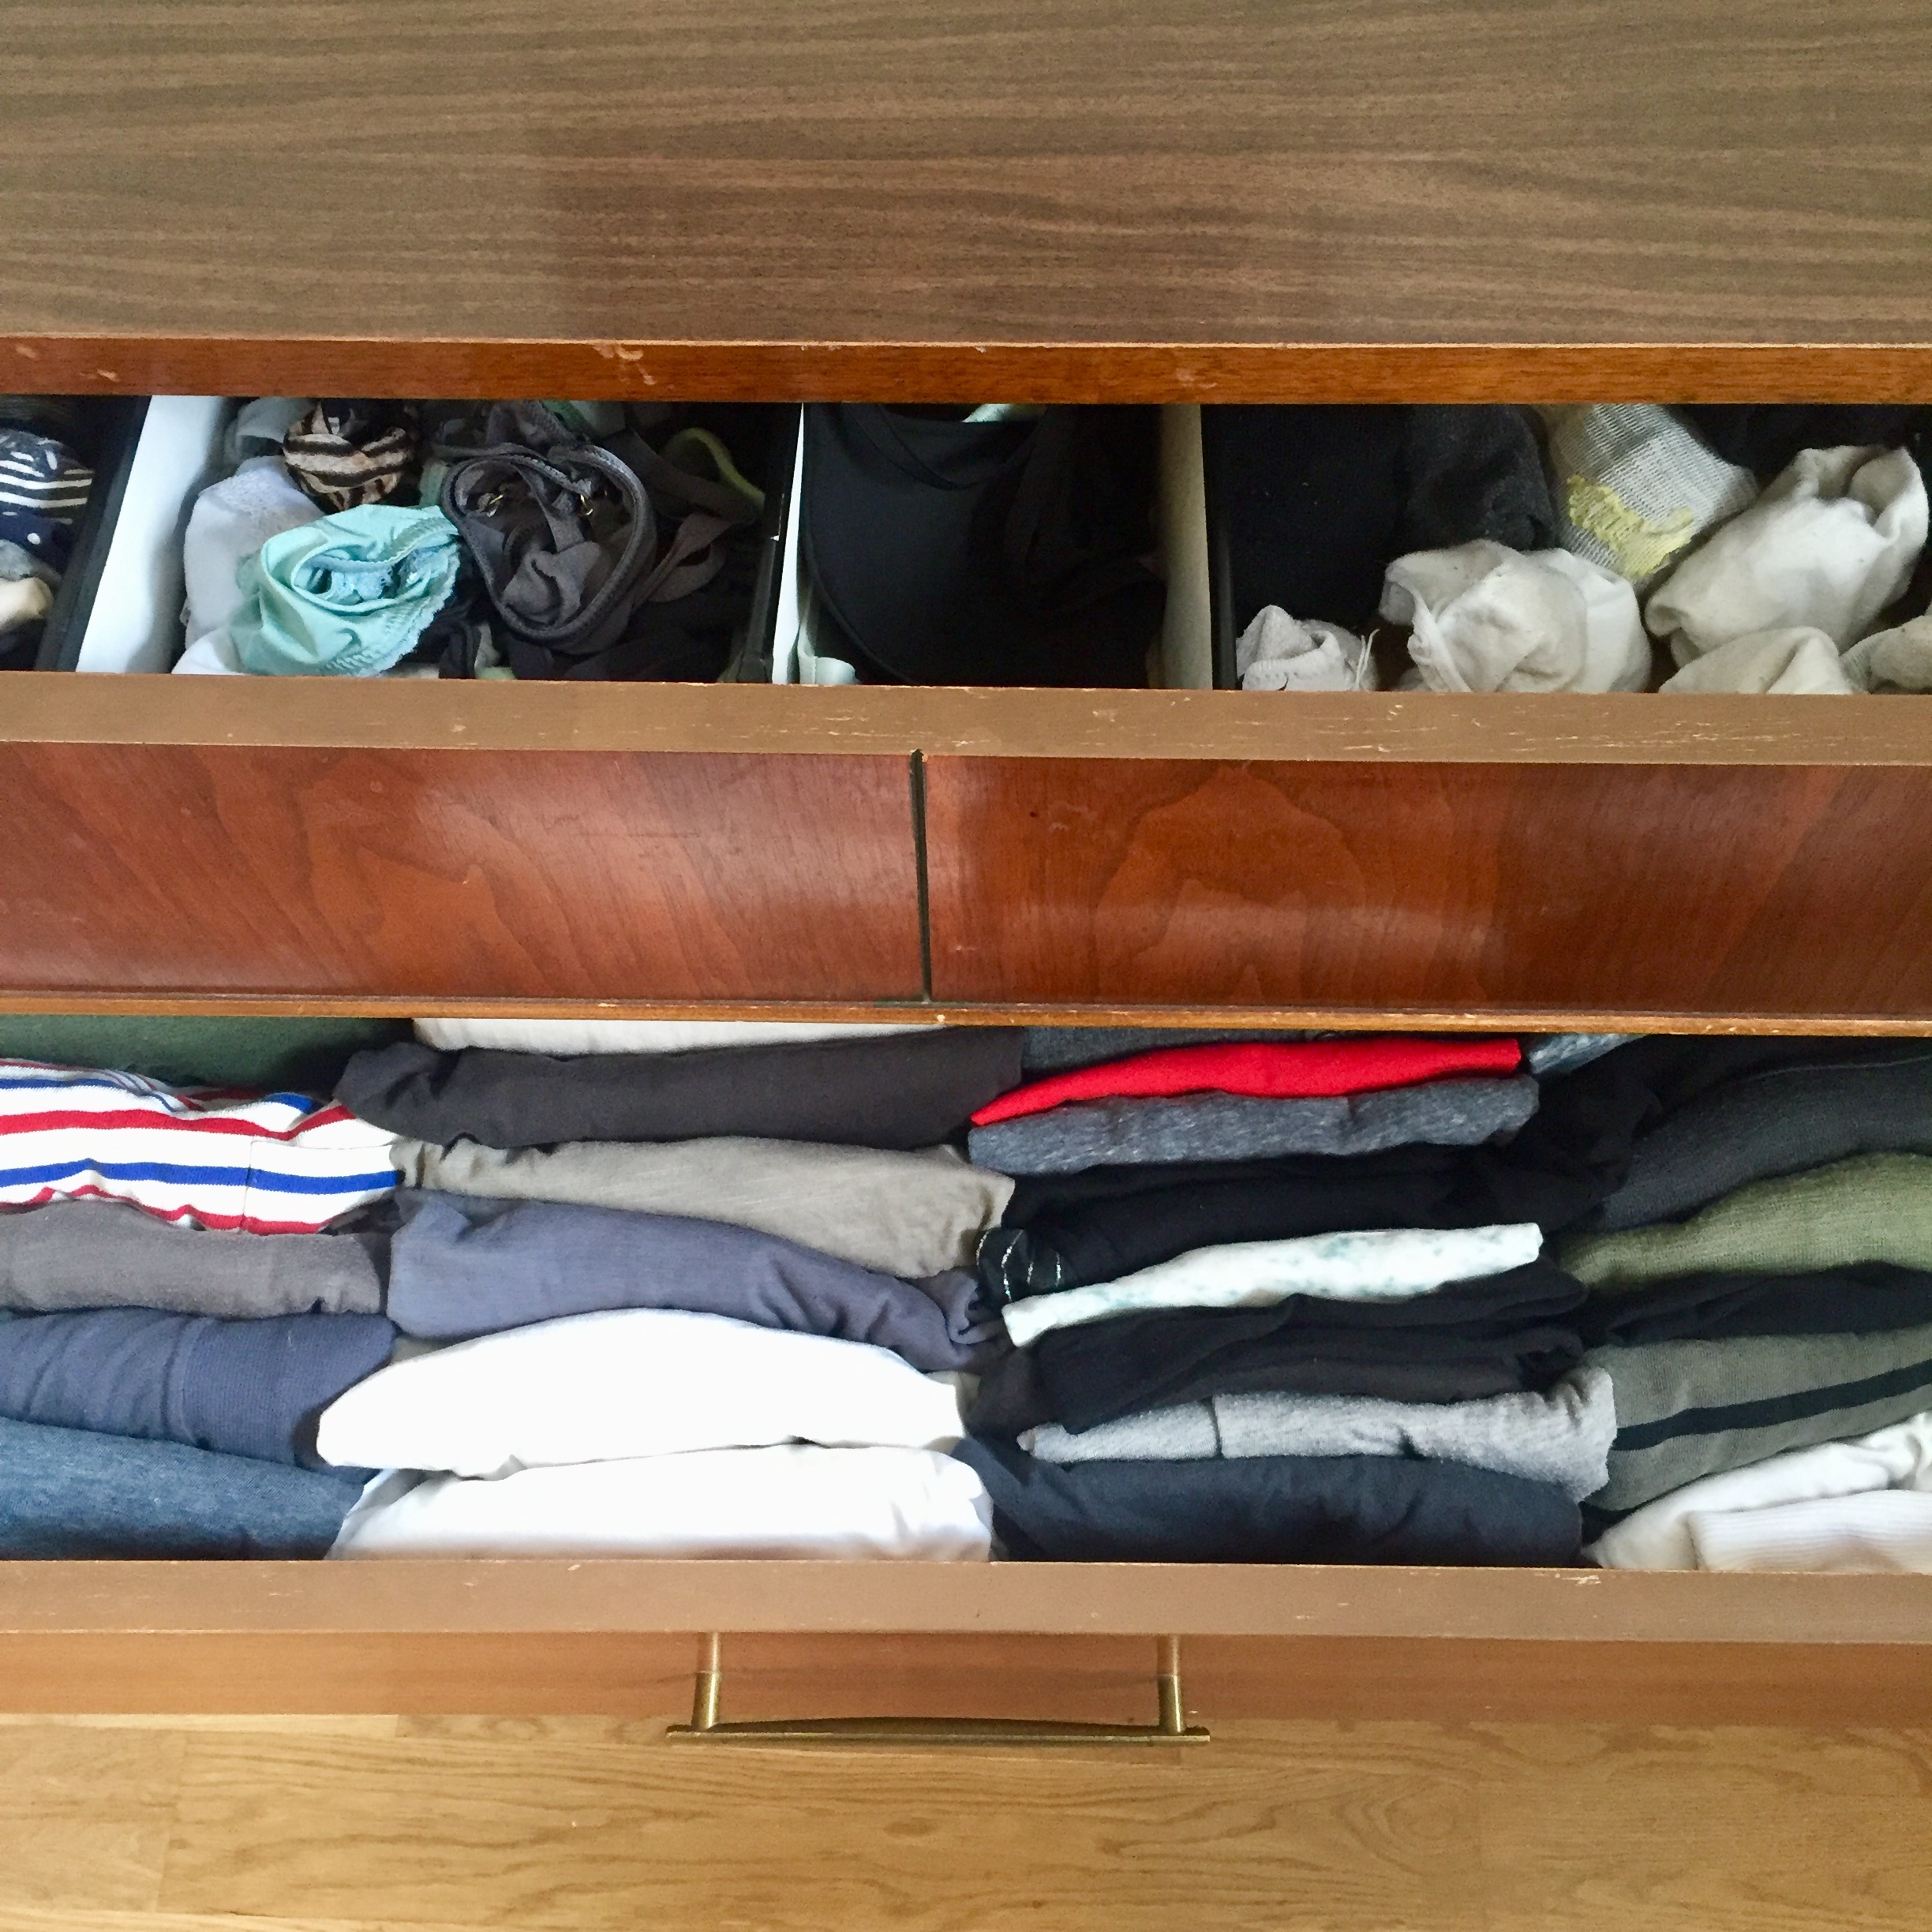 Drawer Dividers - A simple solution for drawer madness is to add walls between categories. Keep the panties from the socks with a divider and keep those shirts in line with the file-folding method combined with a divider. Winningggggg.